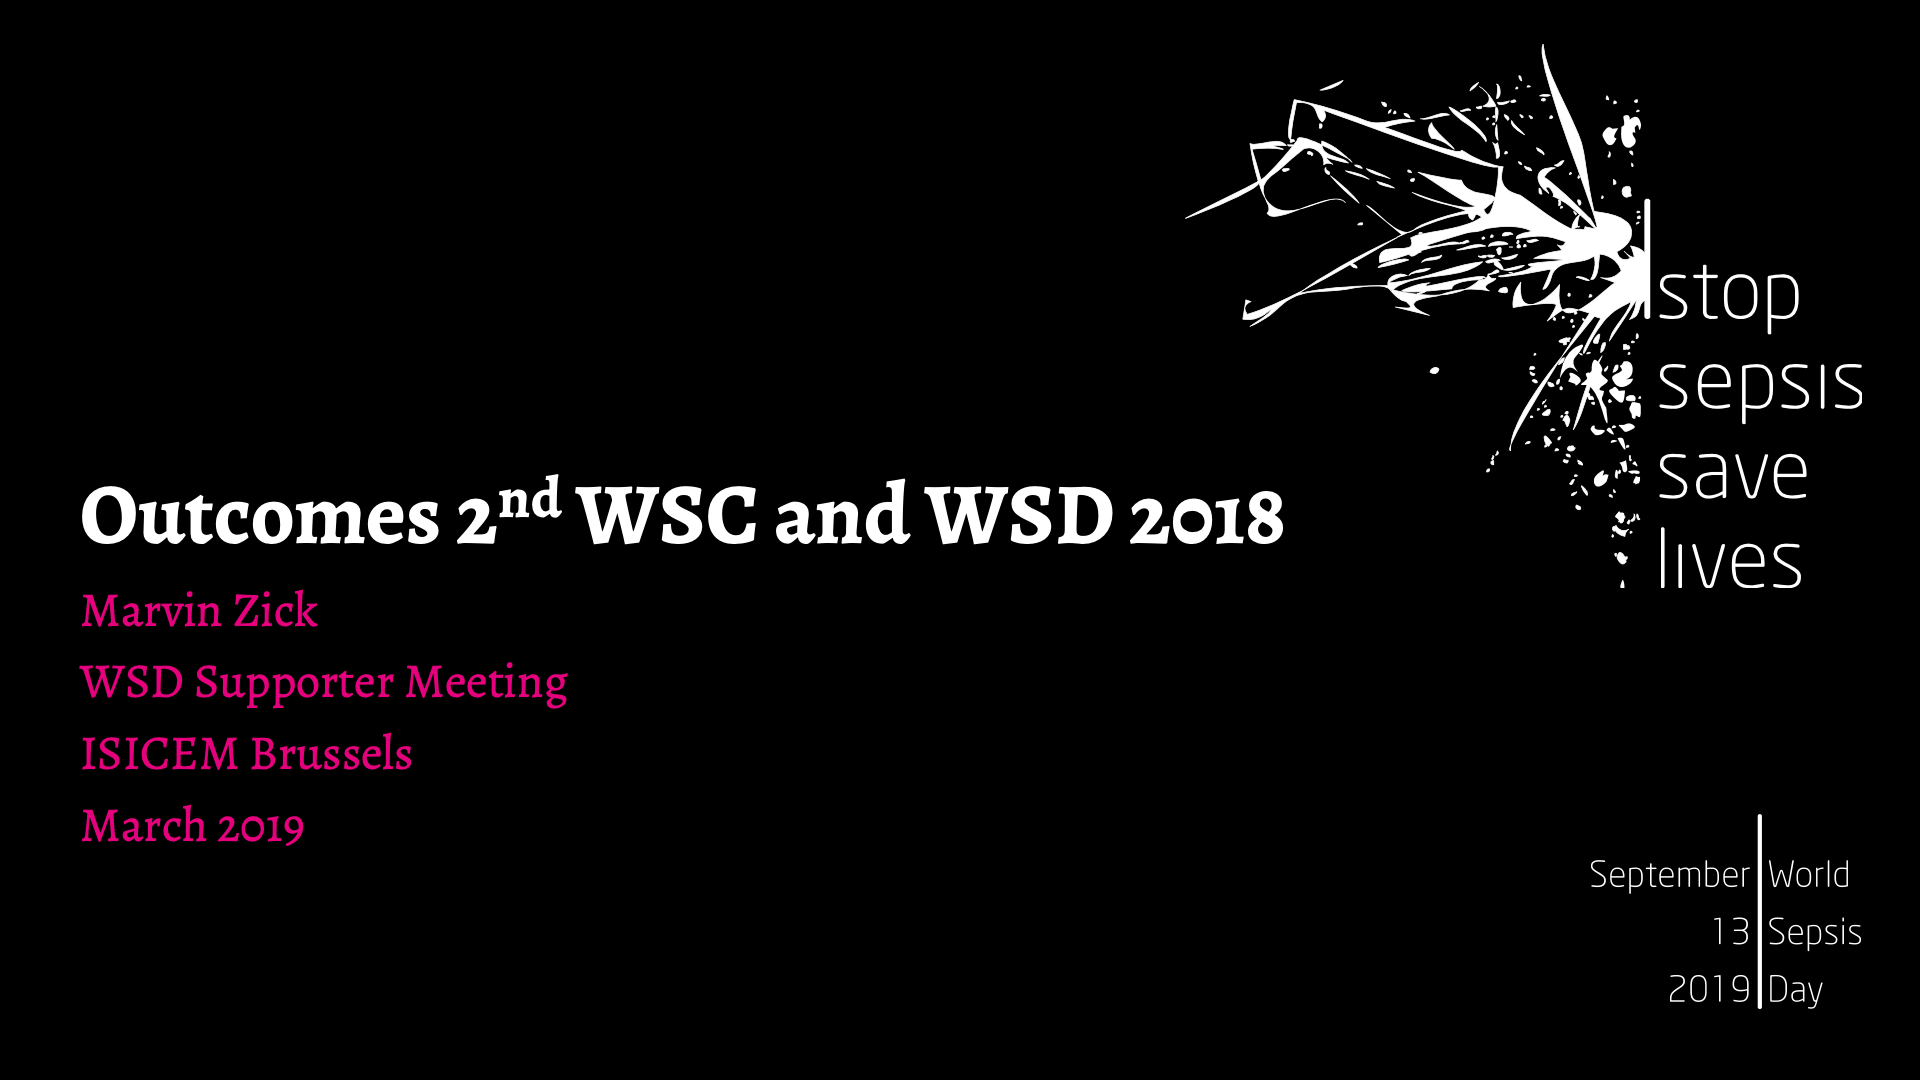 Outcomes 2nd WSC and WSD 2018 1.png